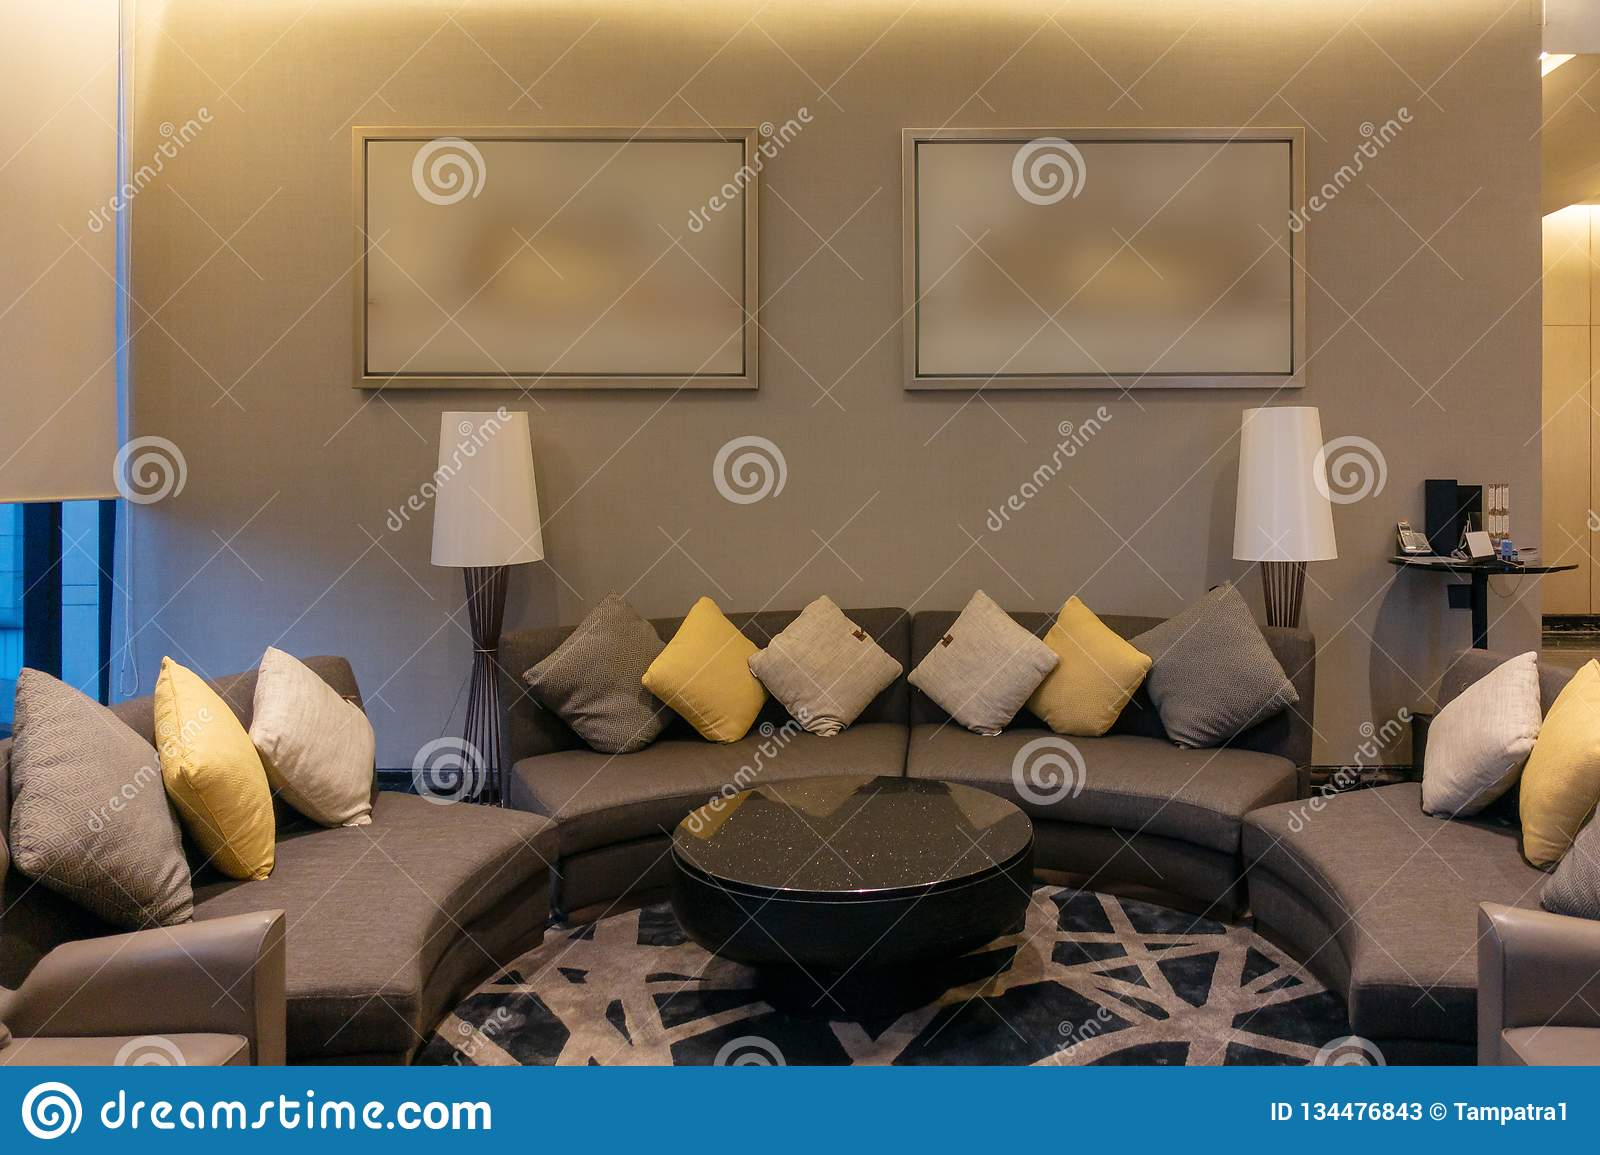 Luxury Modern Living Room With Pillows Furniture Picture Frame And Sofa Decoration At Night Home Interior Design Background Stock Image Image Of Lounge Living 134476843